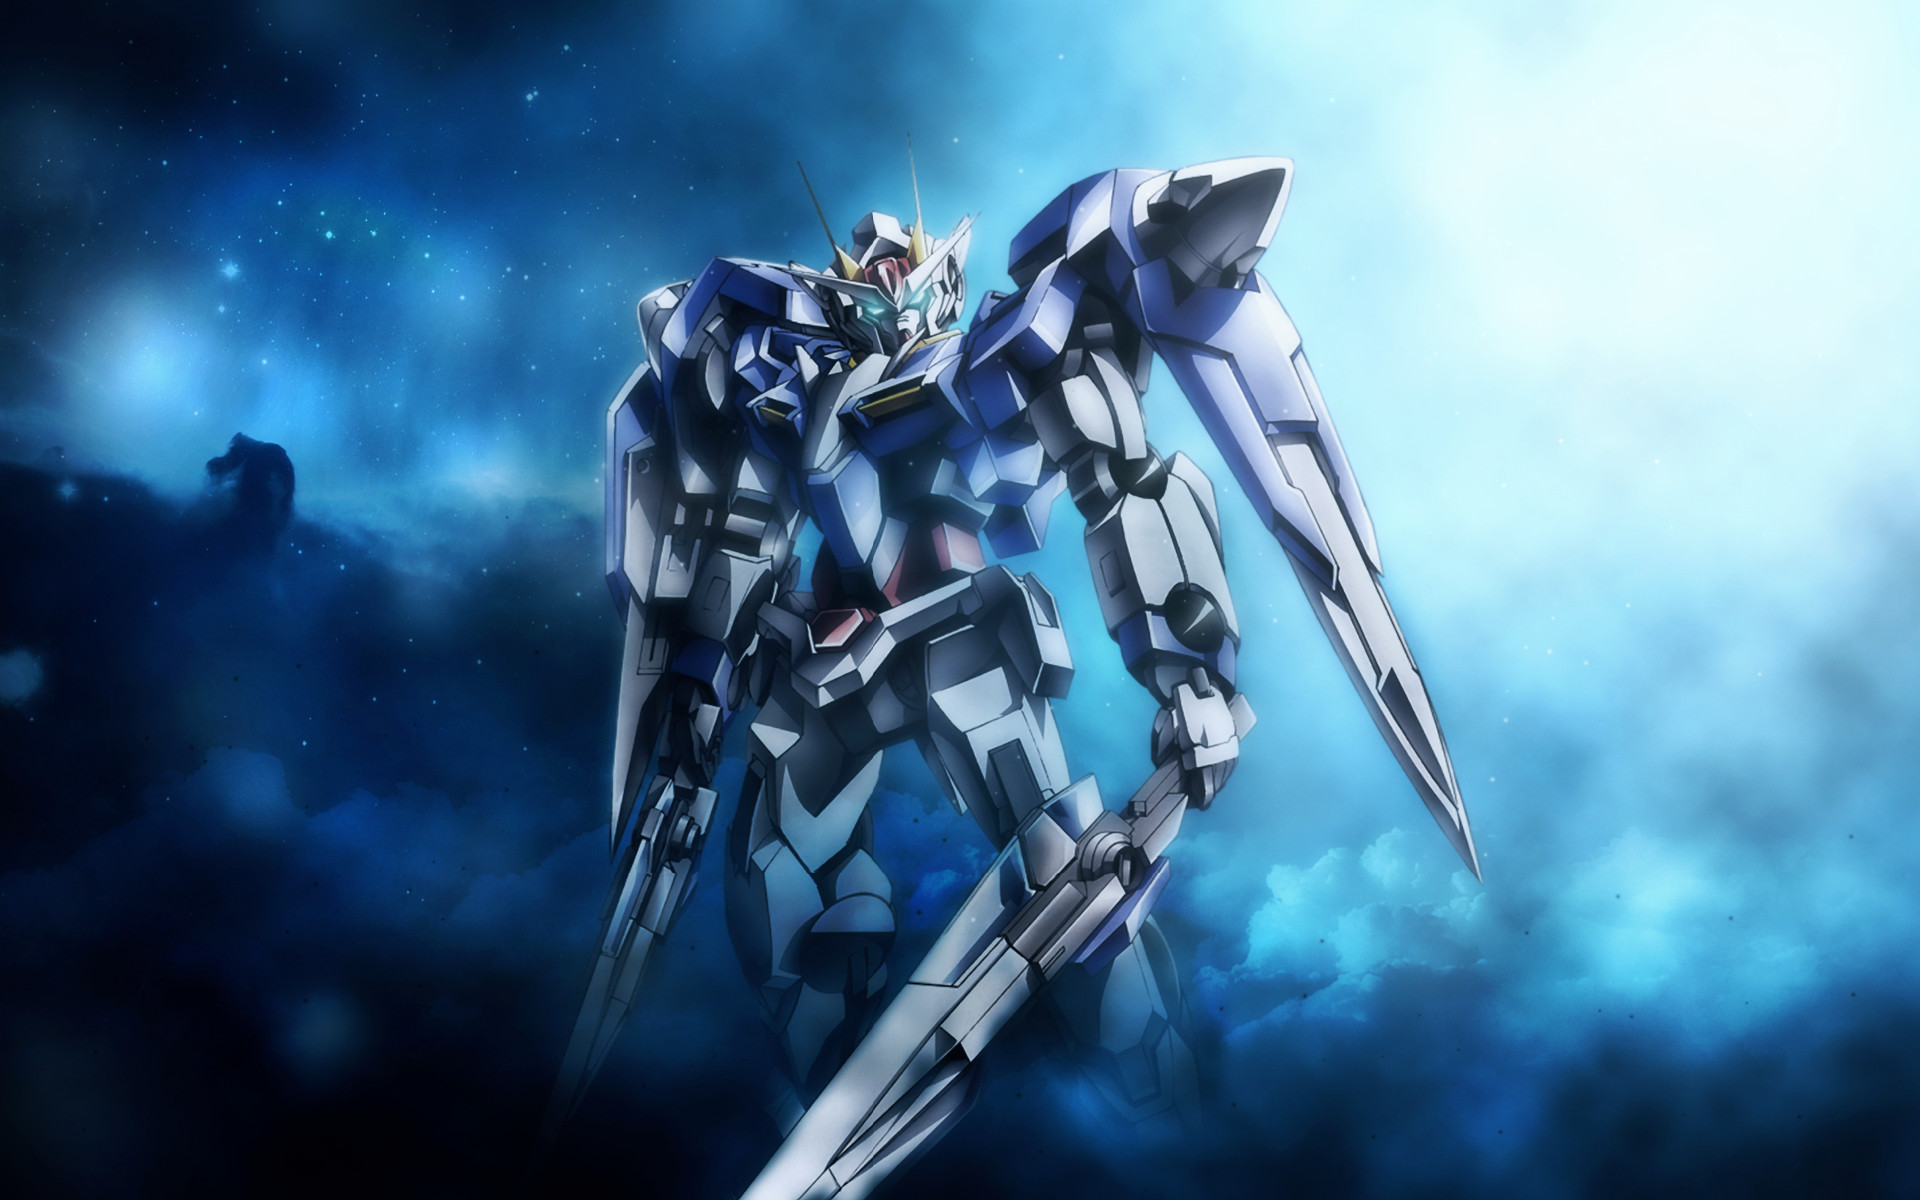 1920x1200 Most Downloaded Gundam 00 Wallpapers - Full HD wallpaper search